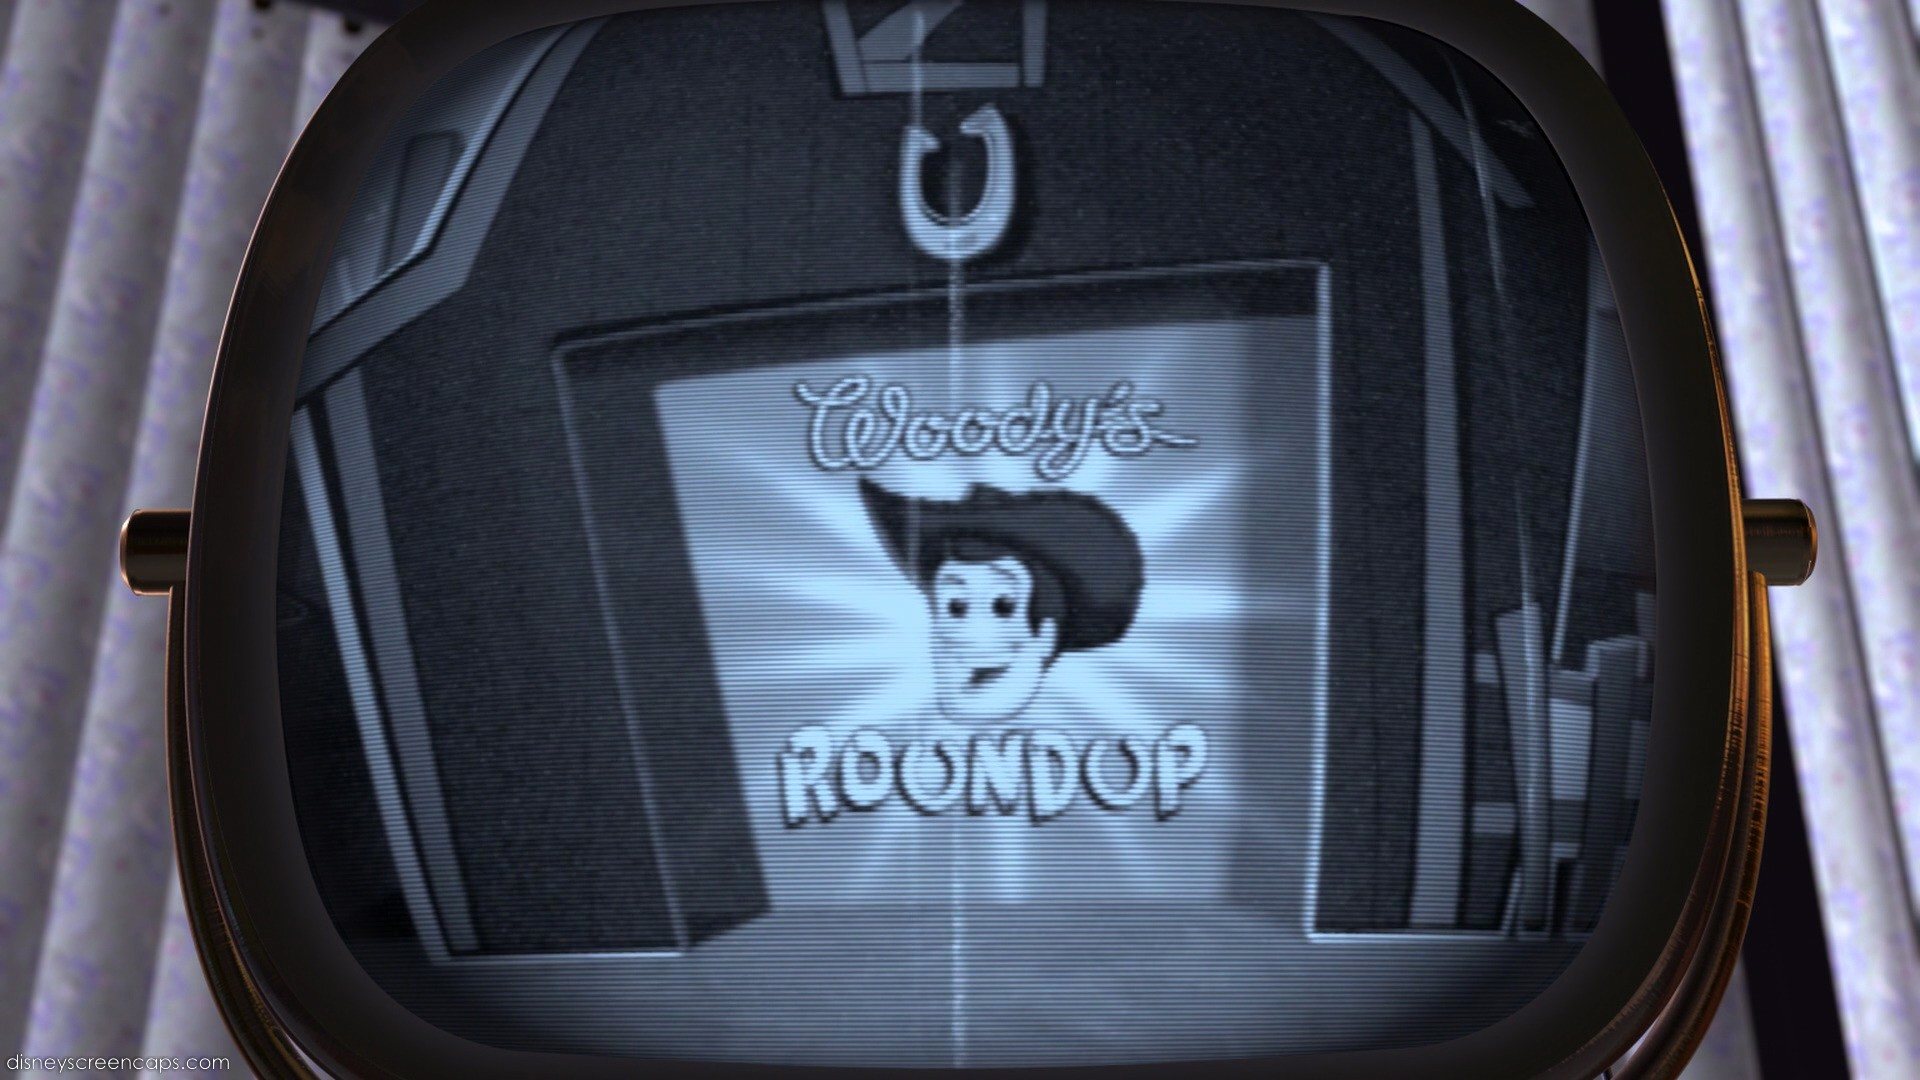 Woody S Roundup Disney Wiki Fandom Powered By Wikia